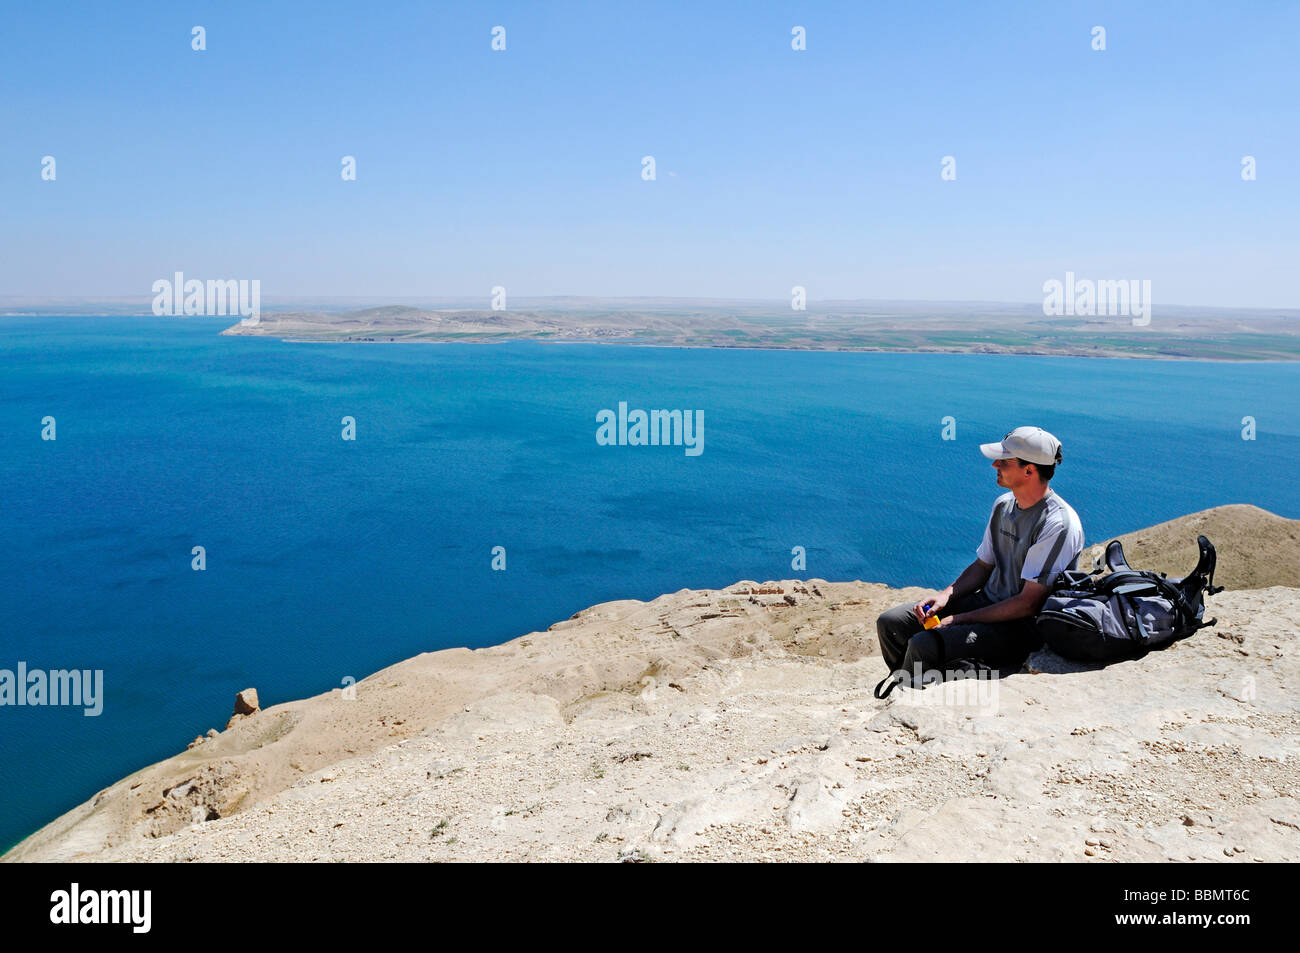 Hikers on the mountain Jebel Arruda, in the back the Asad reservoir of the Euphrates, Syria, Asia Stock Photo